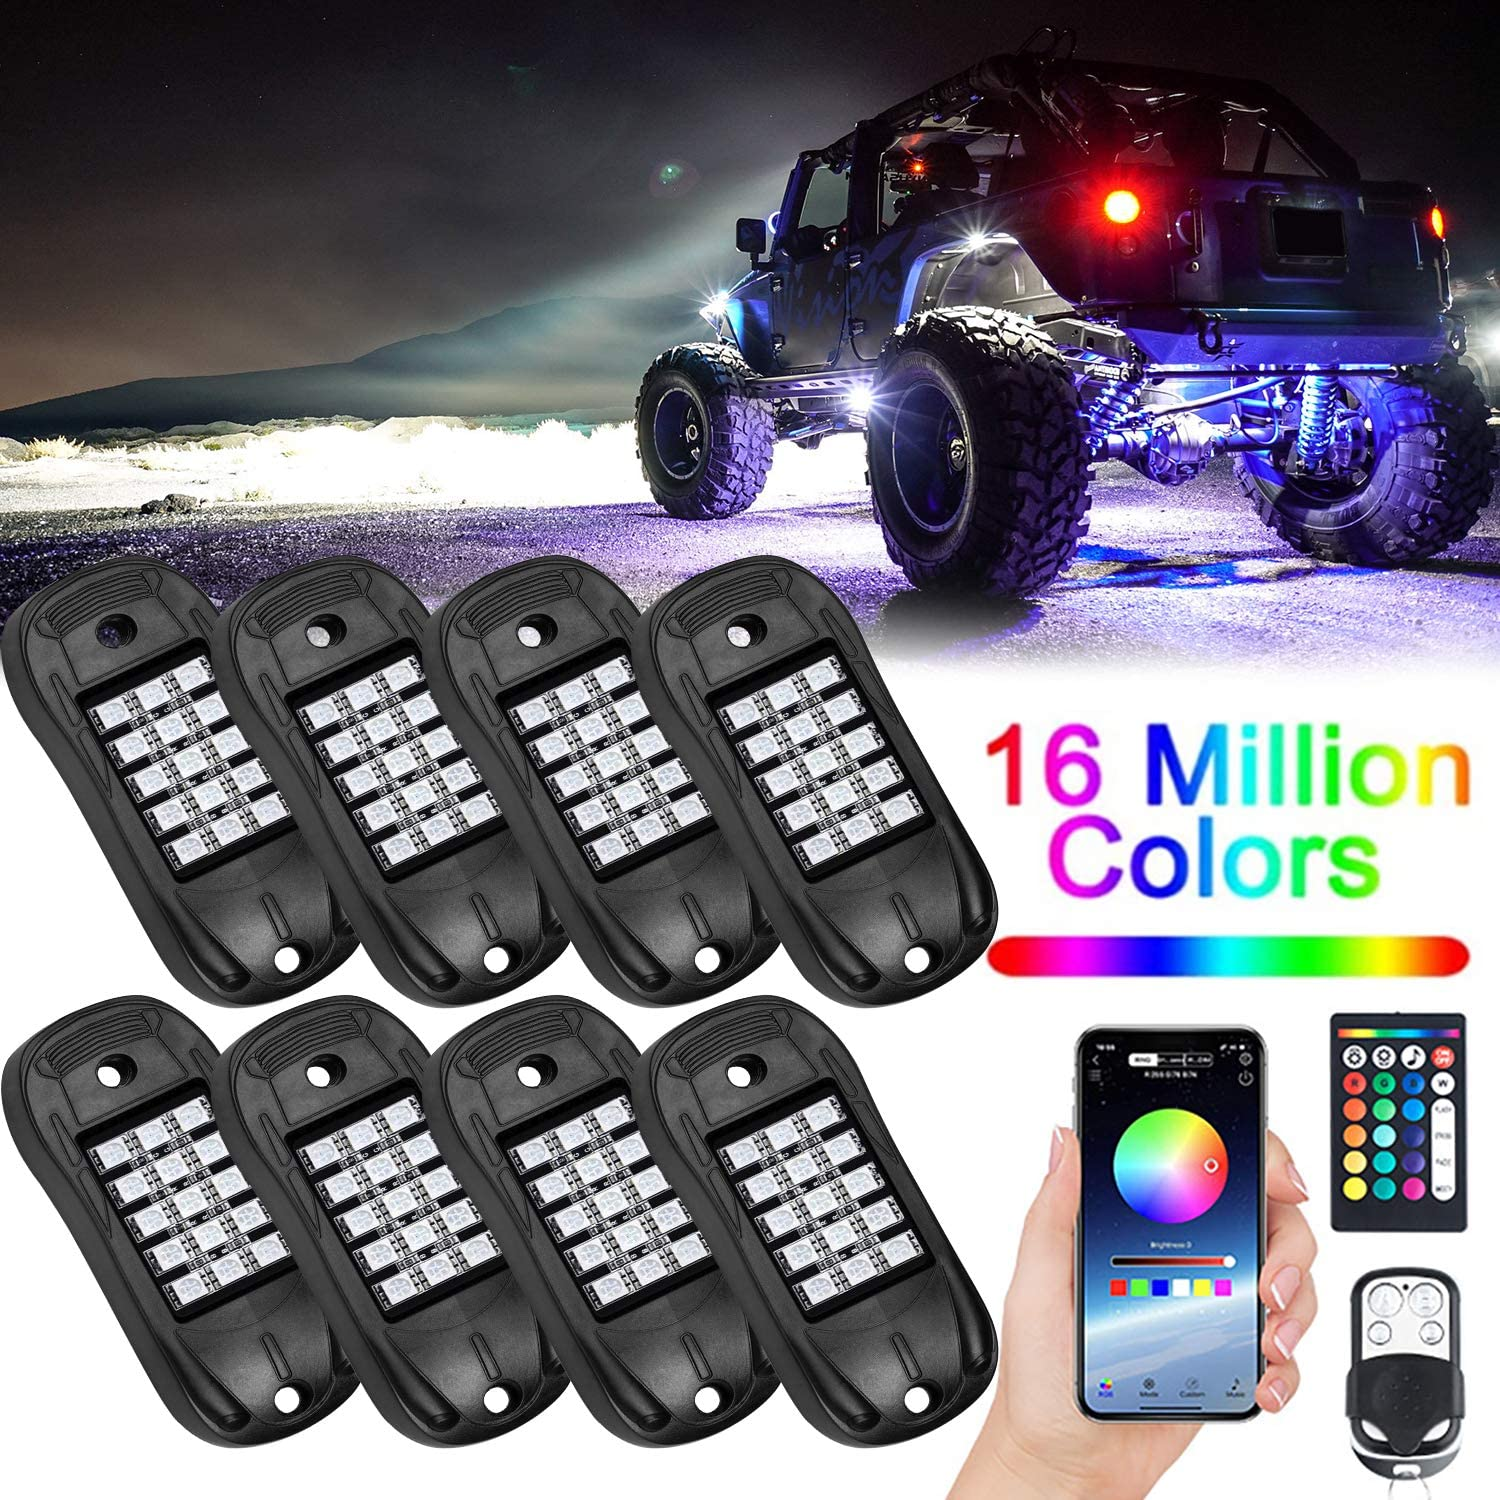 8 Pods Waterproof LED RGB Rock Lights Phone Remote Timing Music Mode Multicolor Neon LED Light Kit Waterproof AUTO Wheel Exterior Underglow Lighting Compatible with Jeep Under Car Truck SUV Off Road